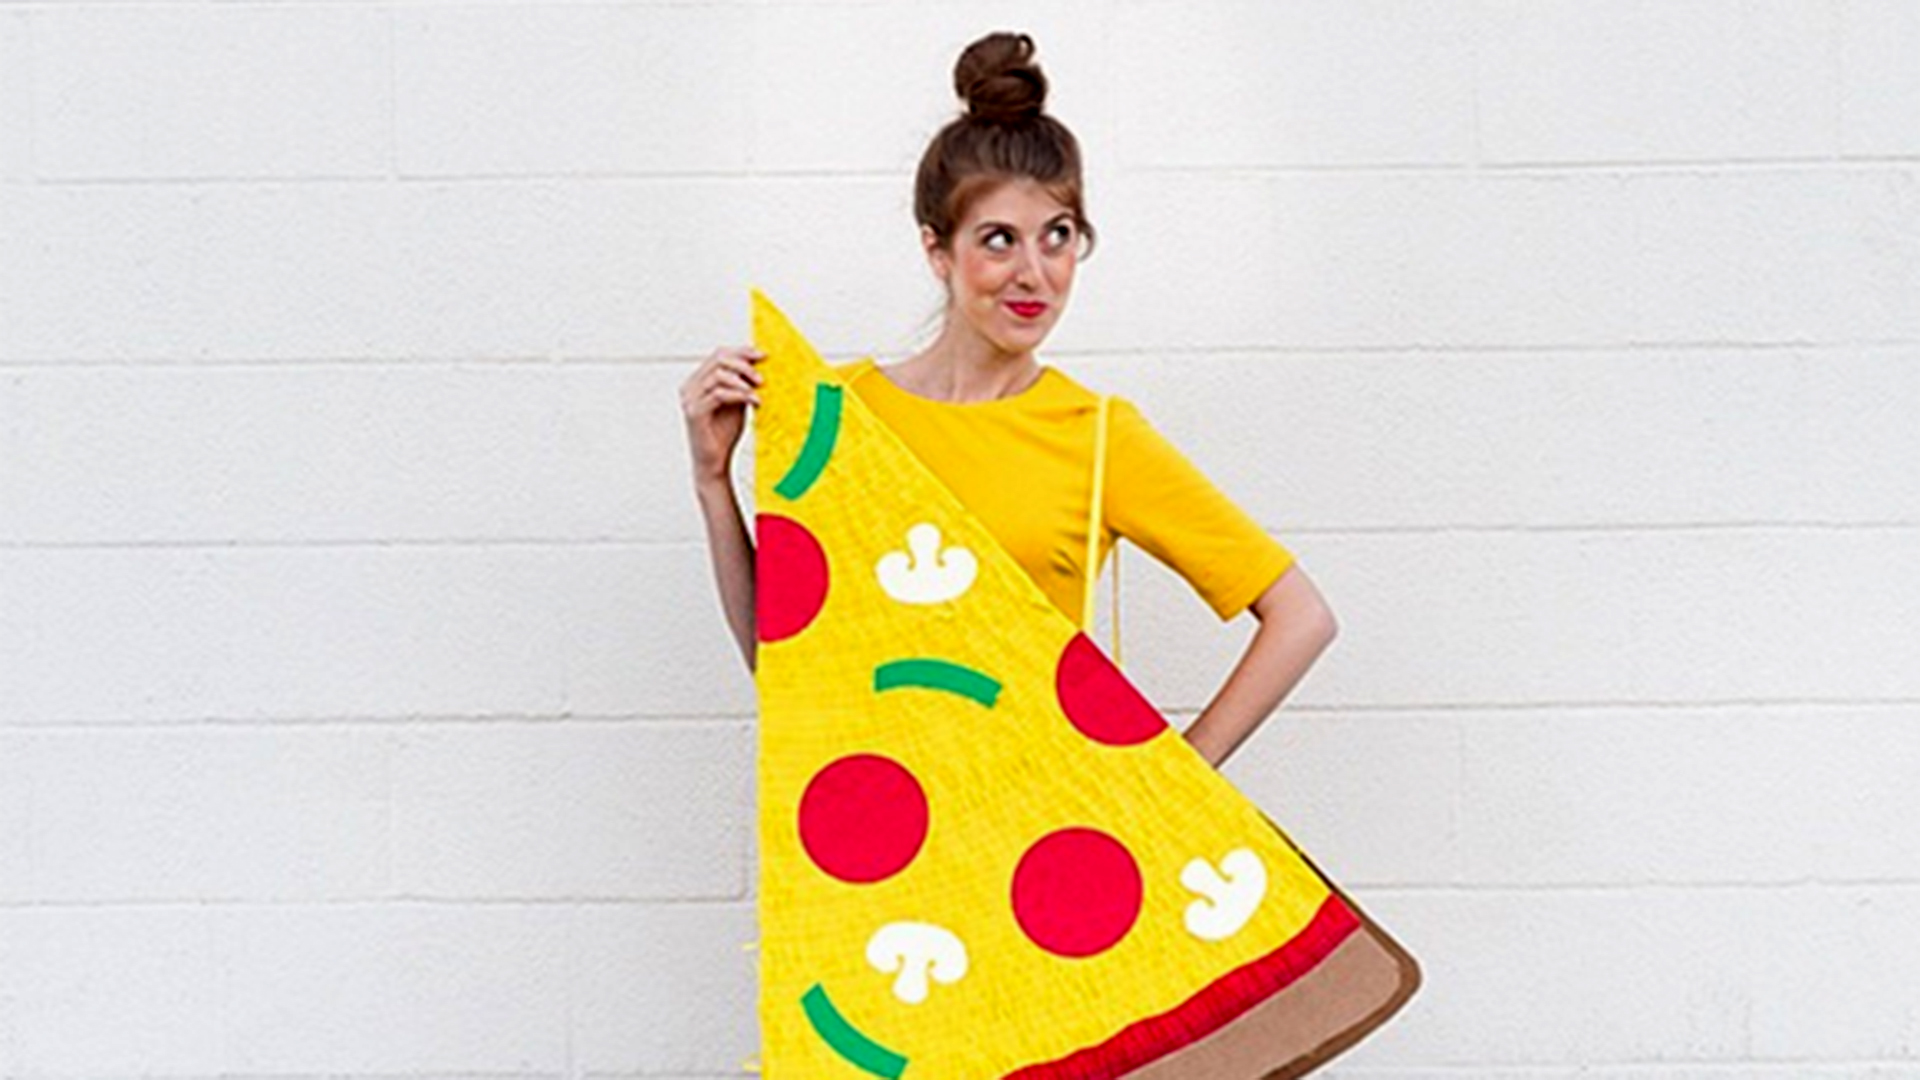 35 diy halloween costume ideas you can make now todaycom - Good Halloween Costumes Homemade